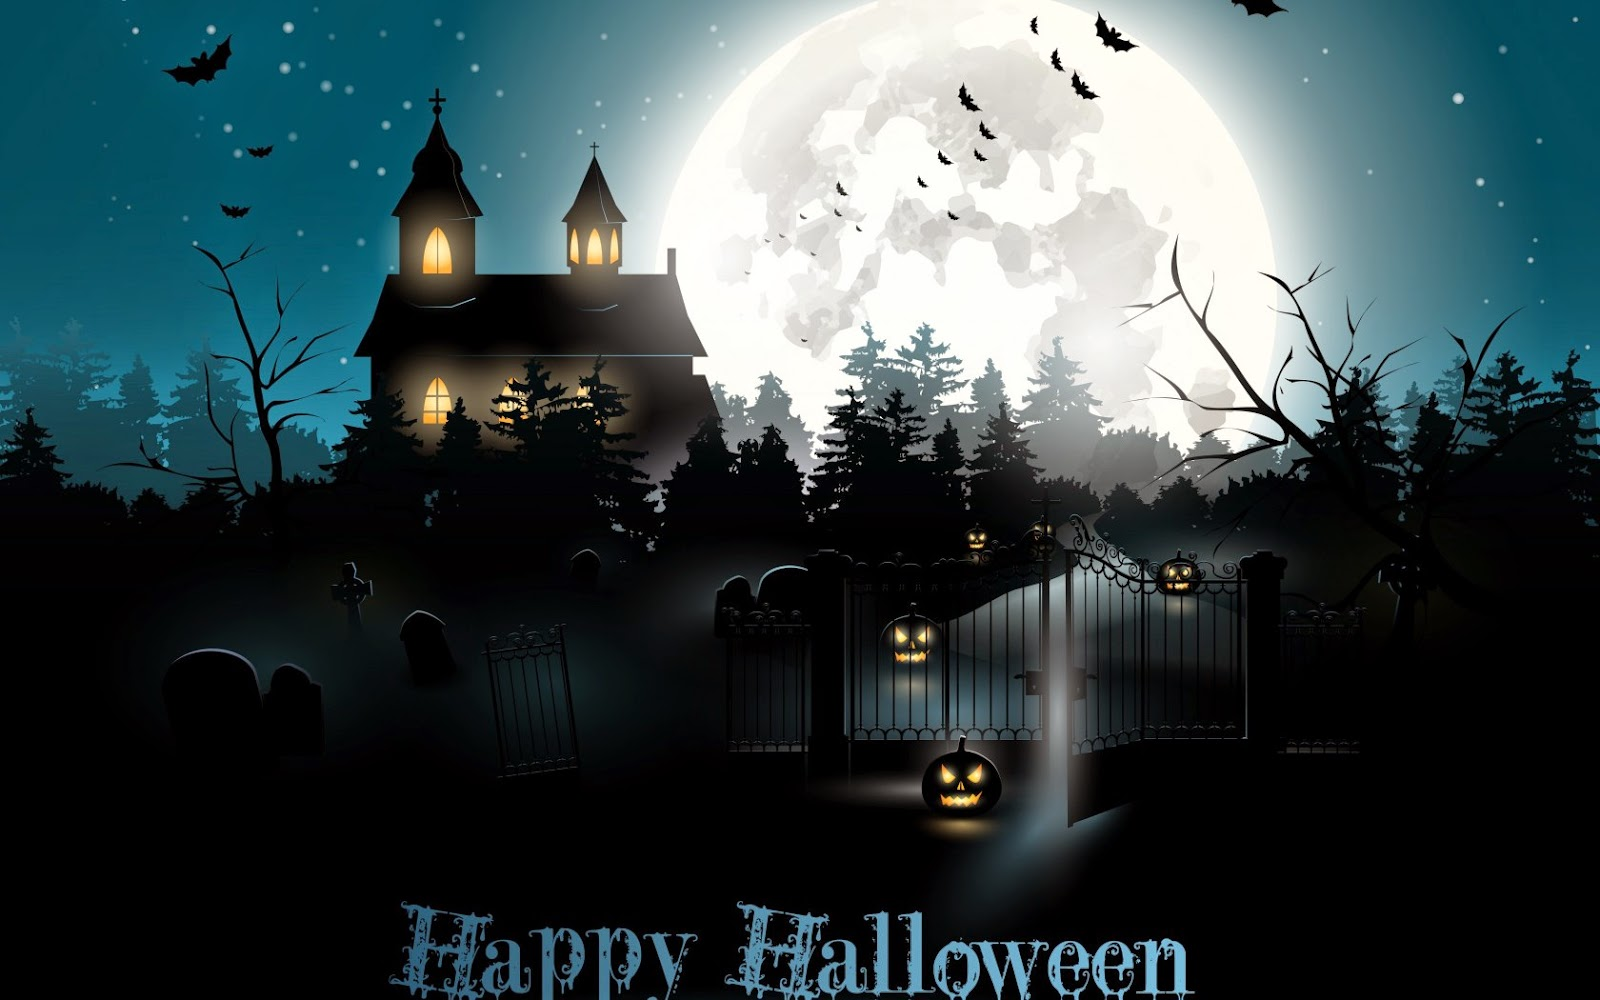 Halloween-haunted-house-Full-white-moon-black-theme-image-1680x1050